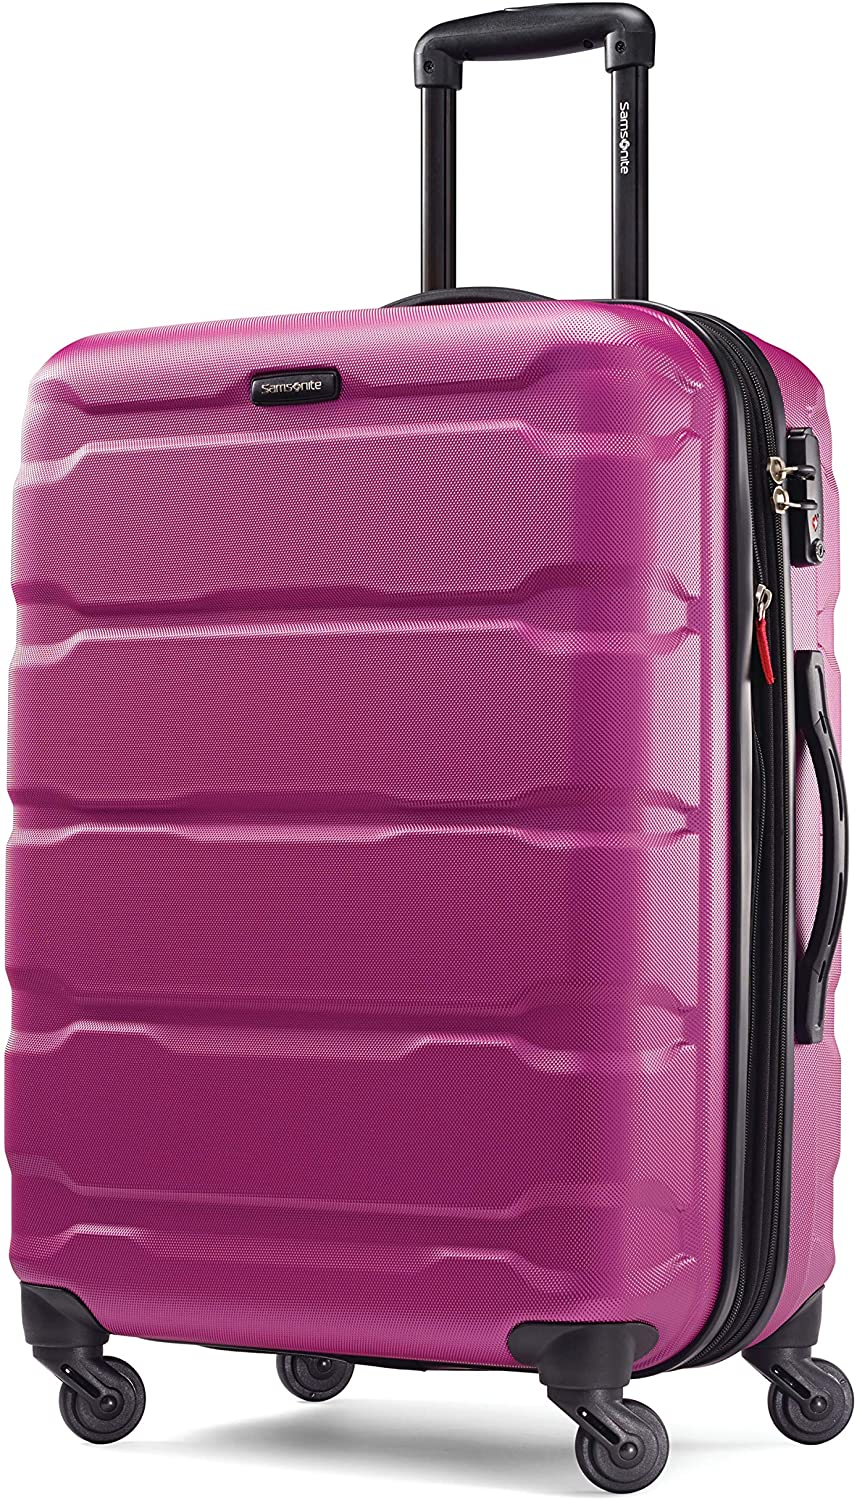 Samsonite Omni PC Hardside Expandable Luggage with Spinner Wheels, Radiant Pink, Checked-Medium 24-Inch